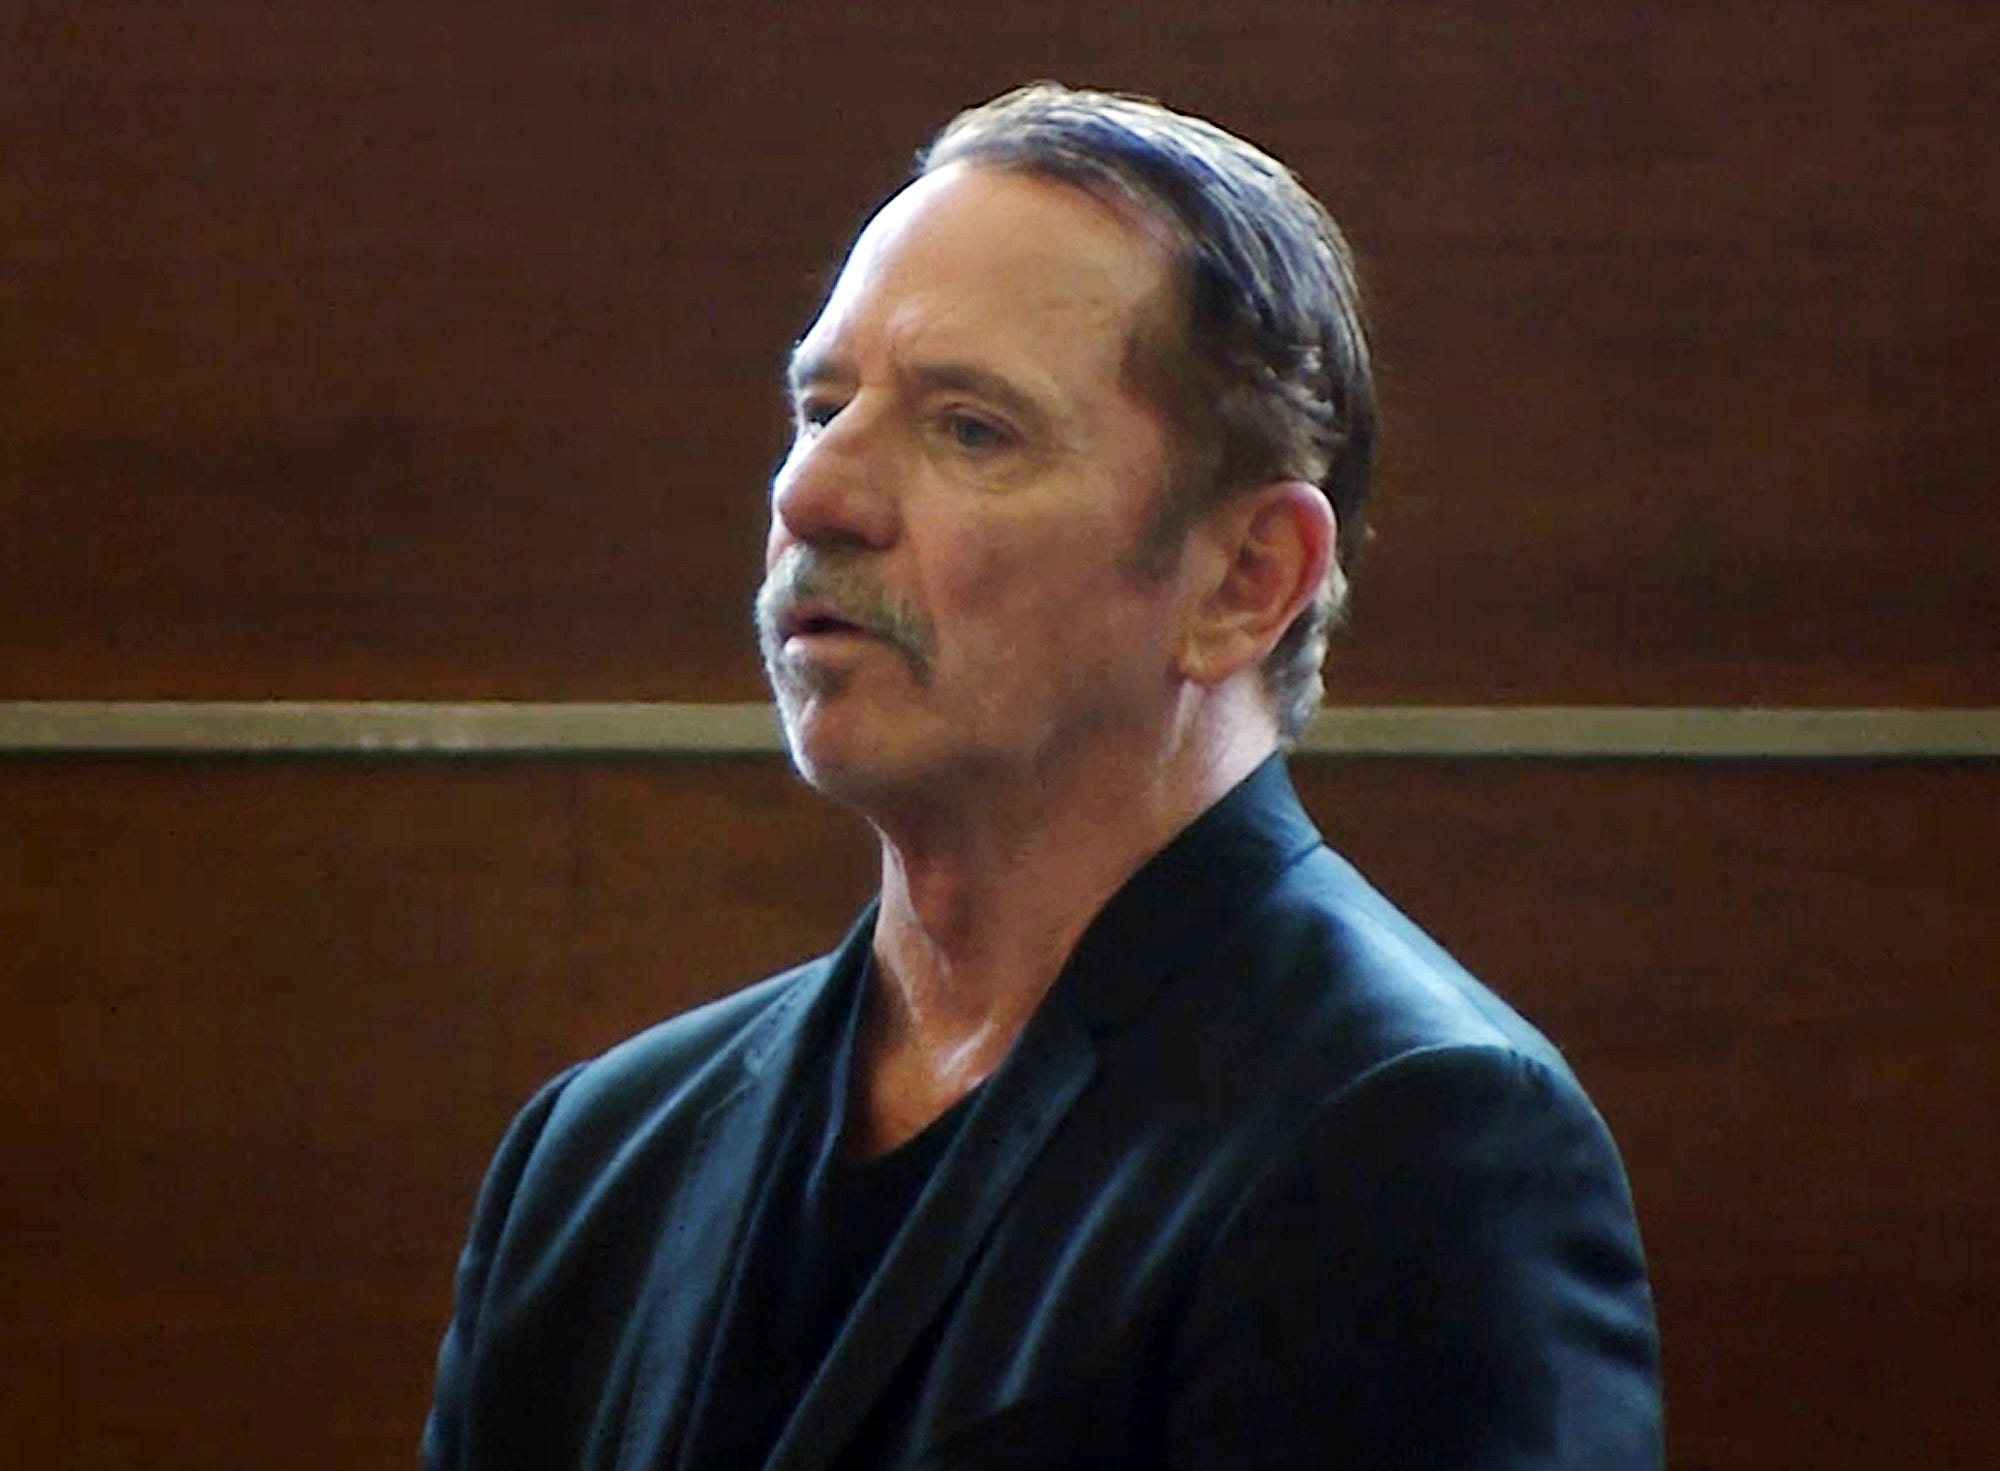 'Dukes of Hazzard' star Tom Wopat charged with assaulting 16-year-old girl